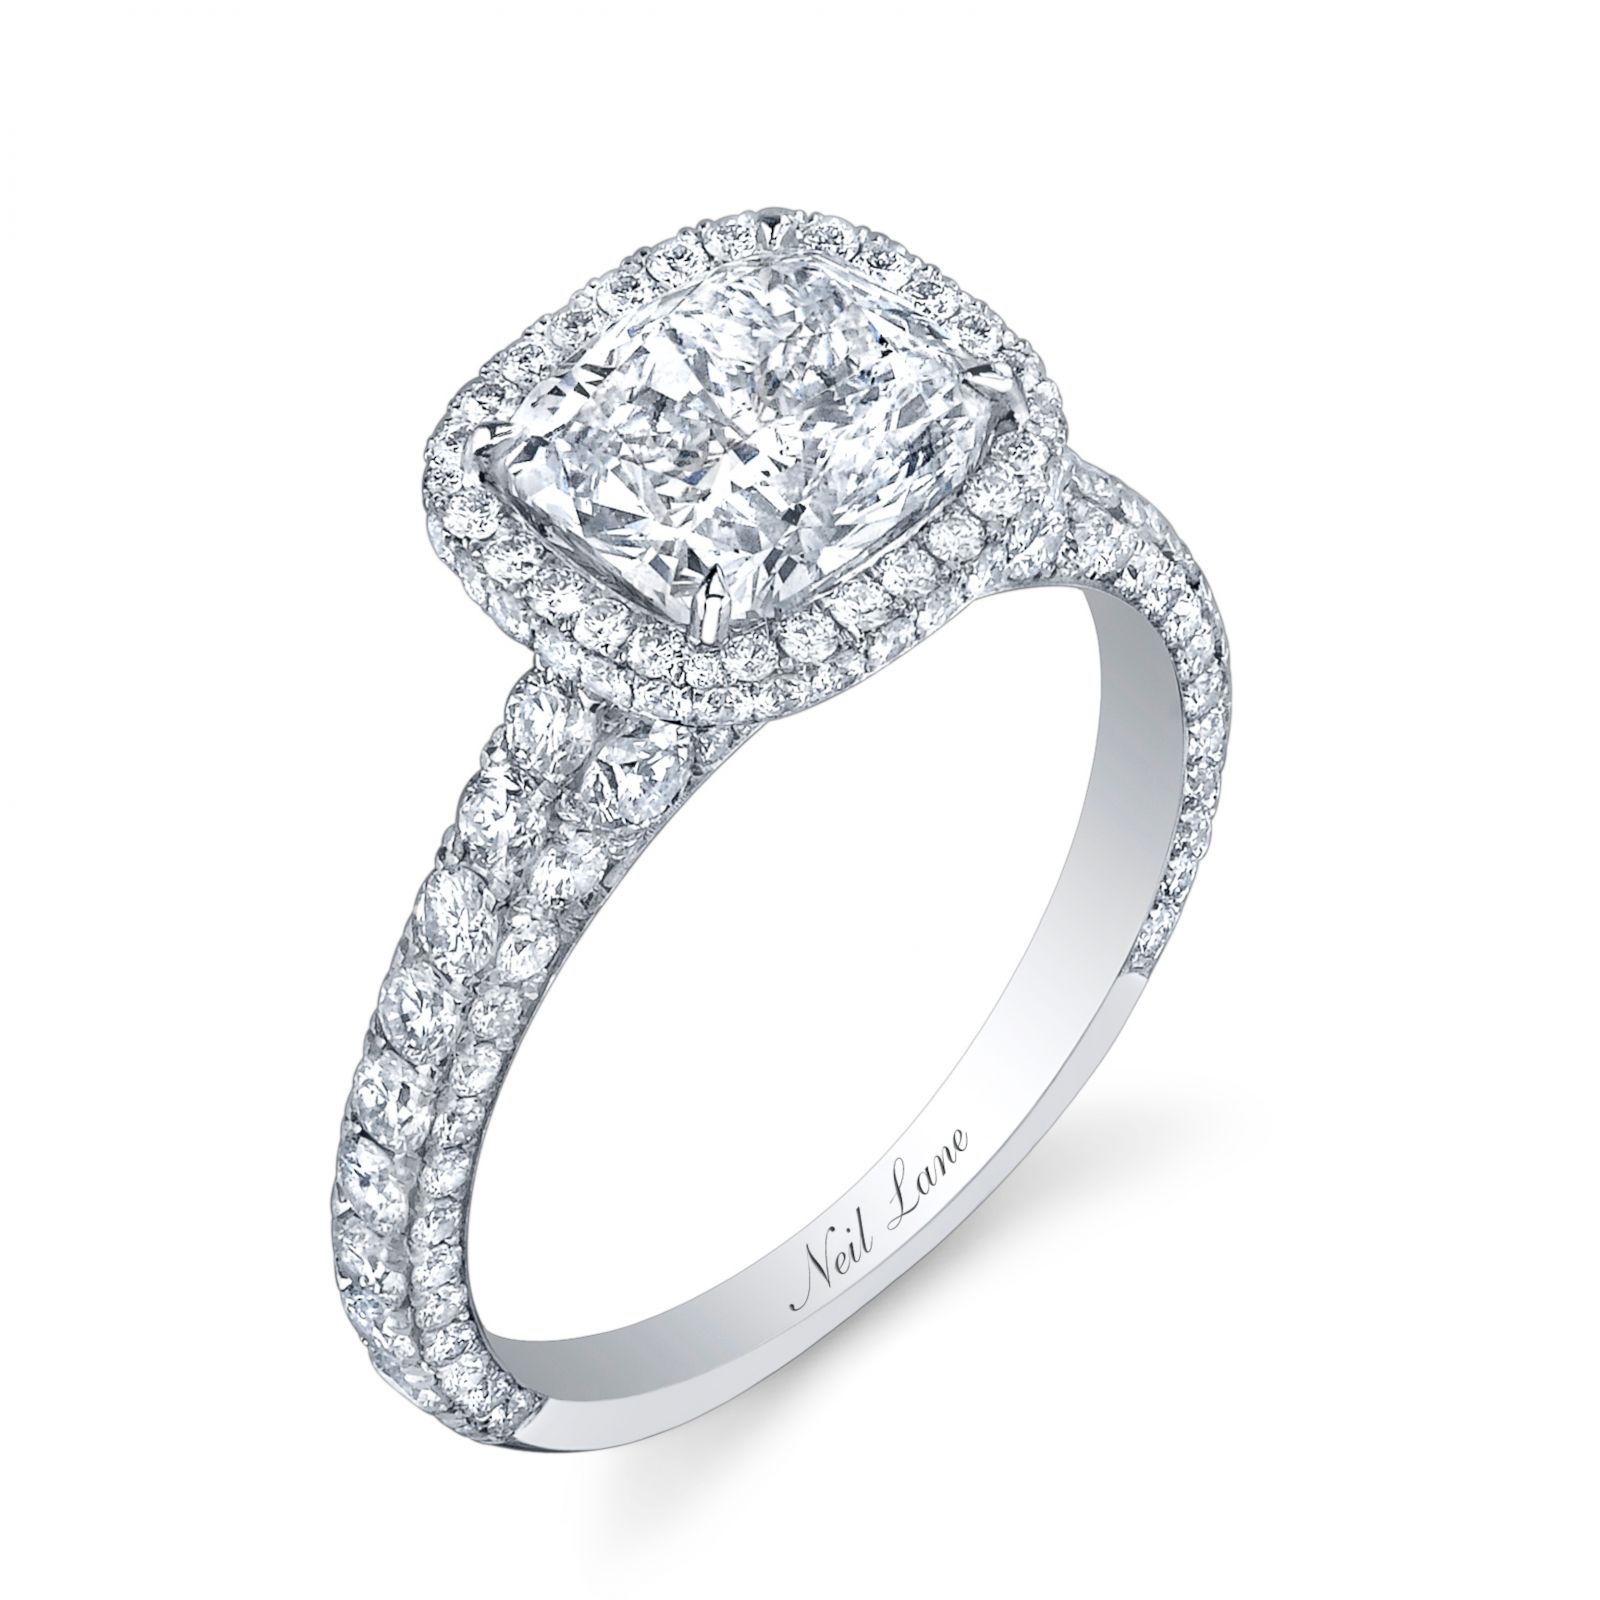 bachelor engagement ring favorite neil lane wedding bands A history of Bachelor and Bachelorette engagement rings Photos ABC News